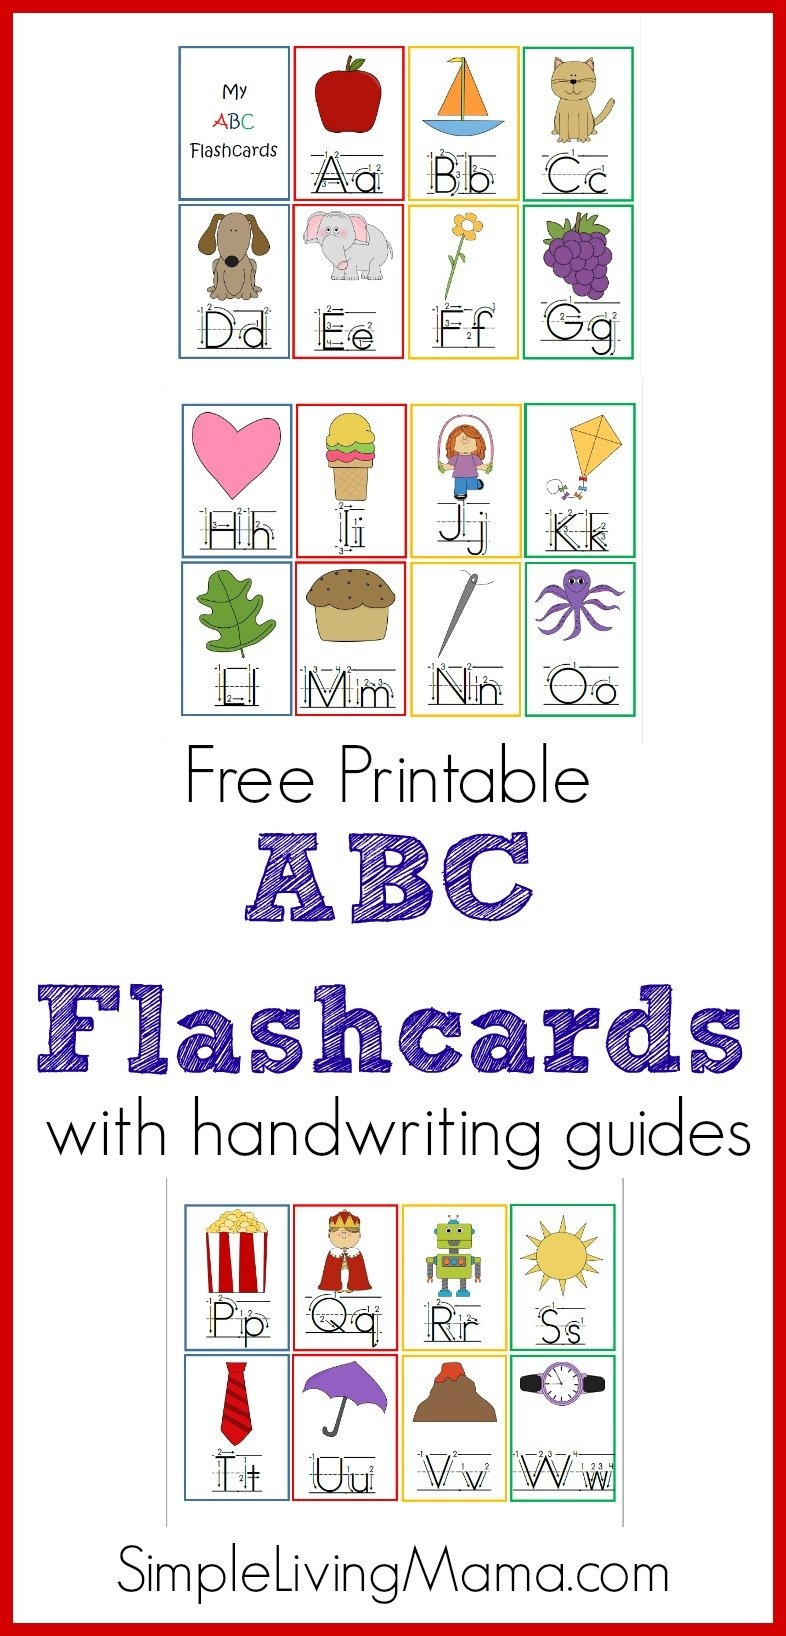 Preschool Abc Flashcards - Homeschool Printables For Free - Free Printable Abc Flashcards With Pictures